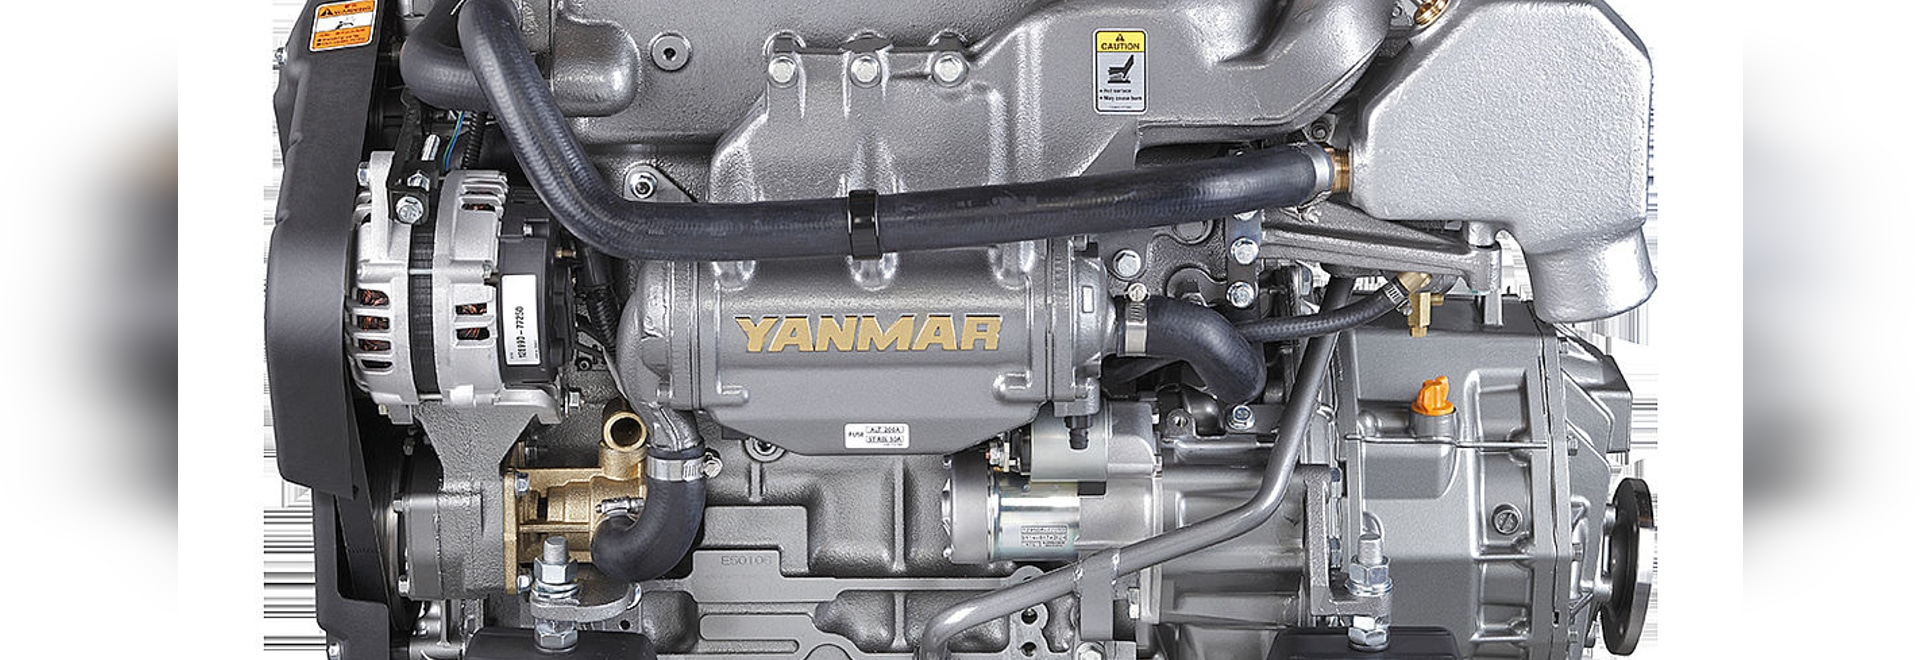 Yanmar brings common-rail injection to sub-110hp marine diesels